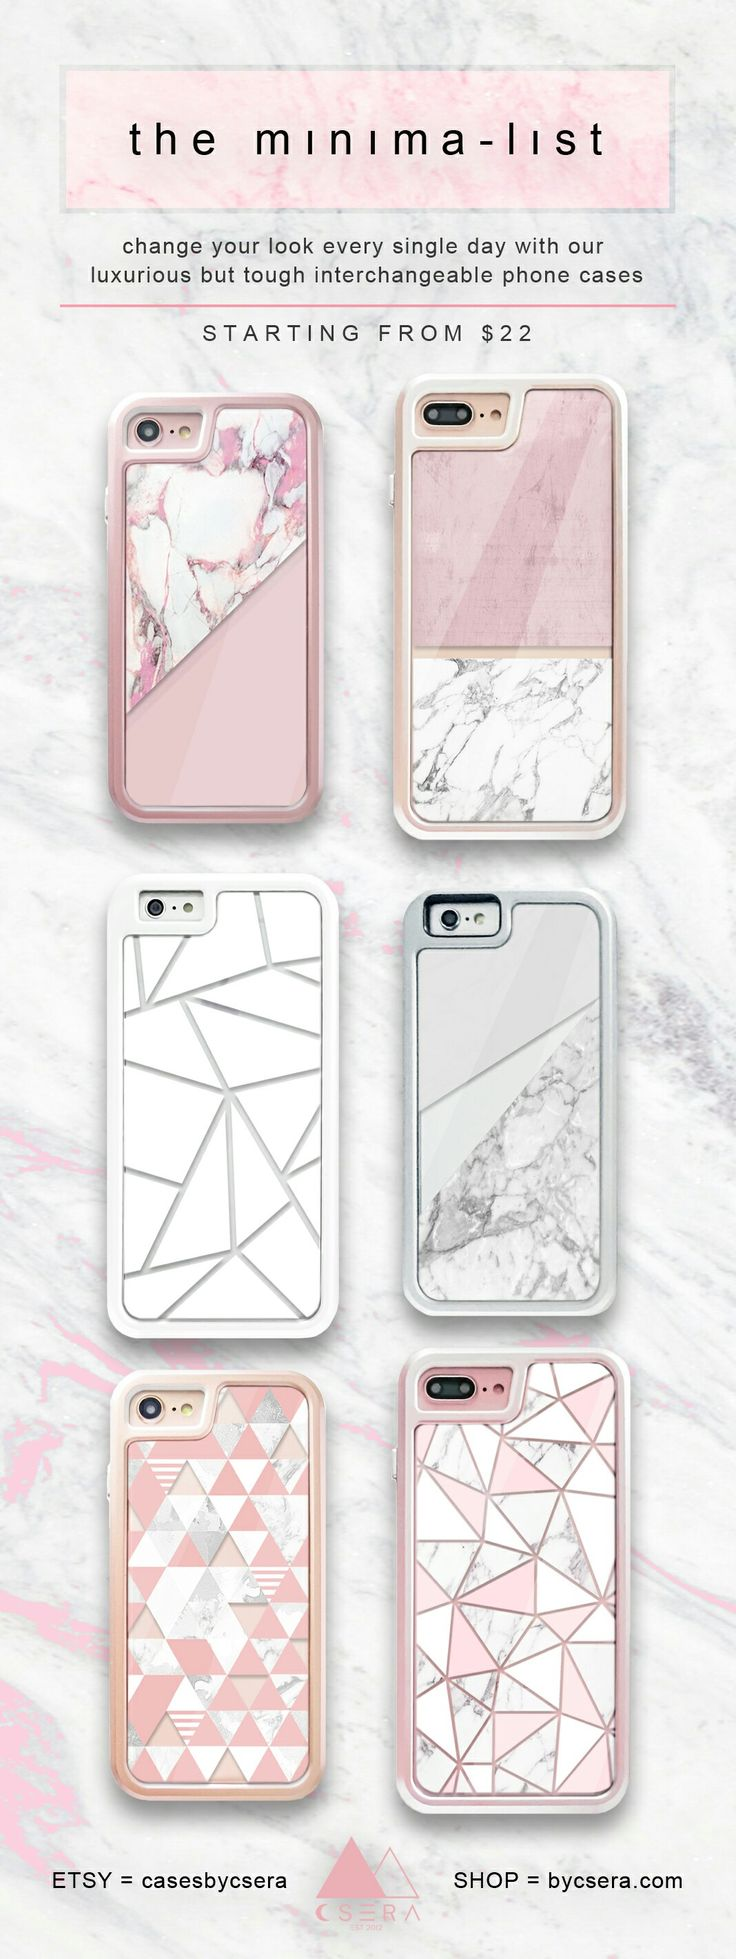 One case = limitless choice, shop now at https://www.etsy.com/shop/casesbycsera/items?section_id=21764011